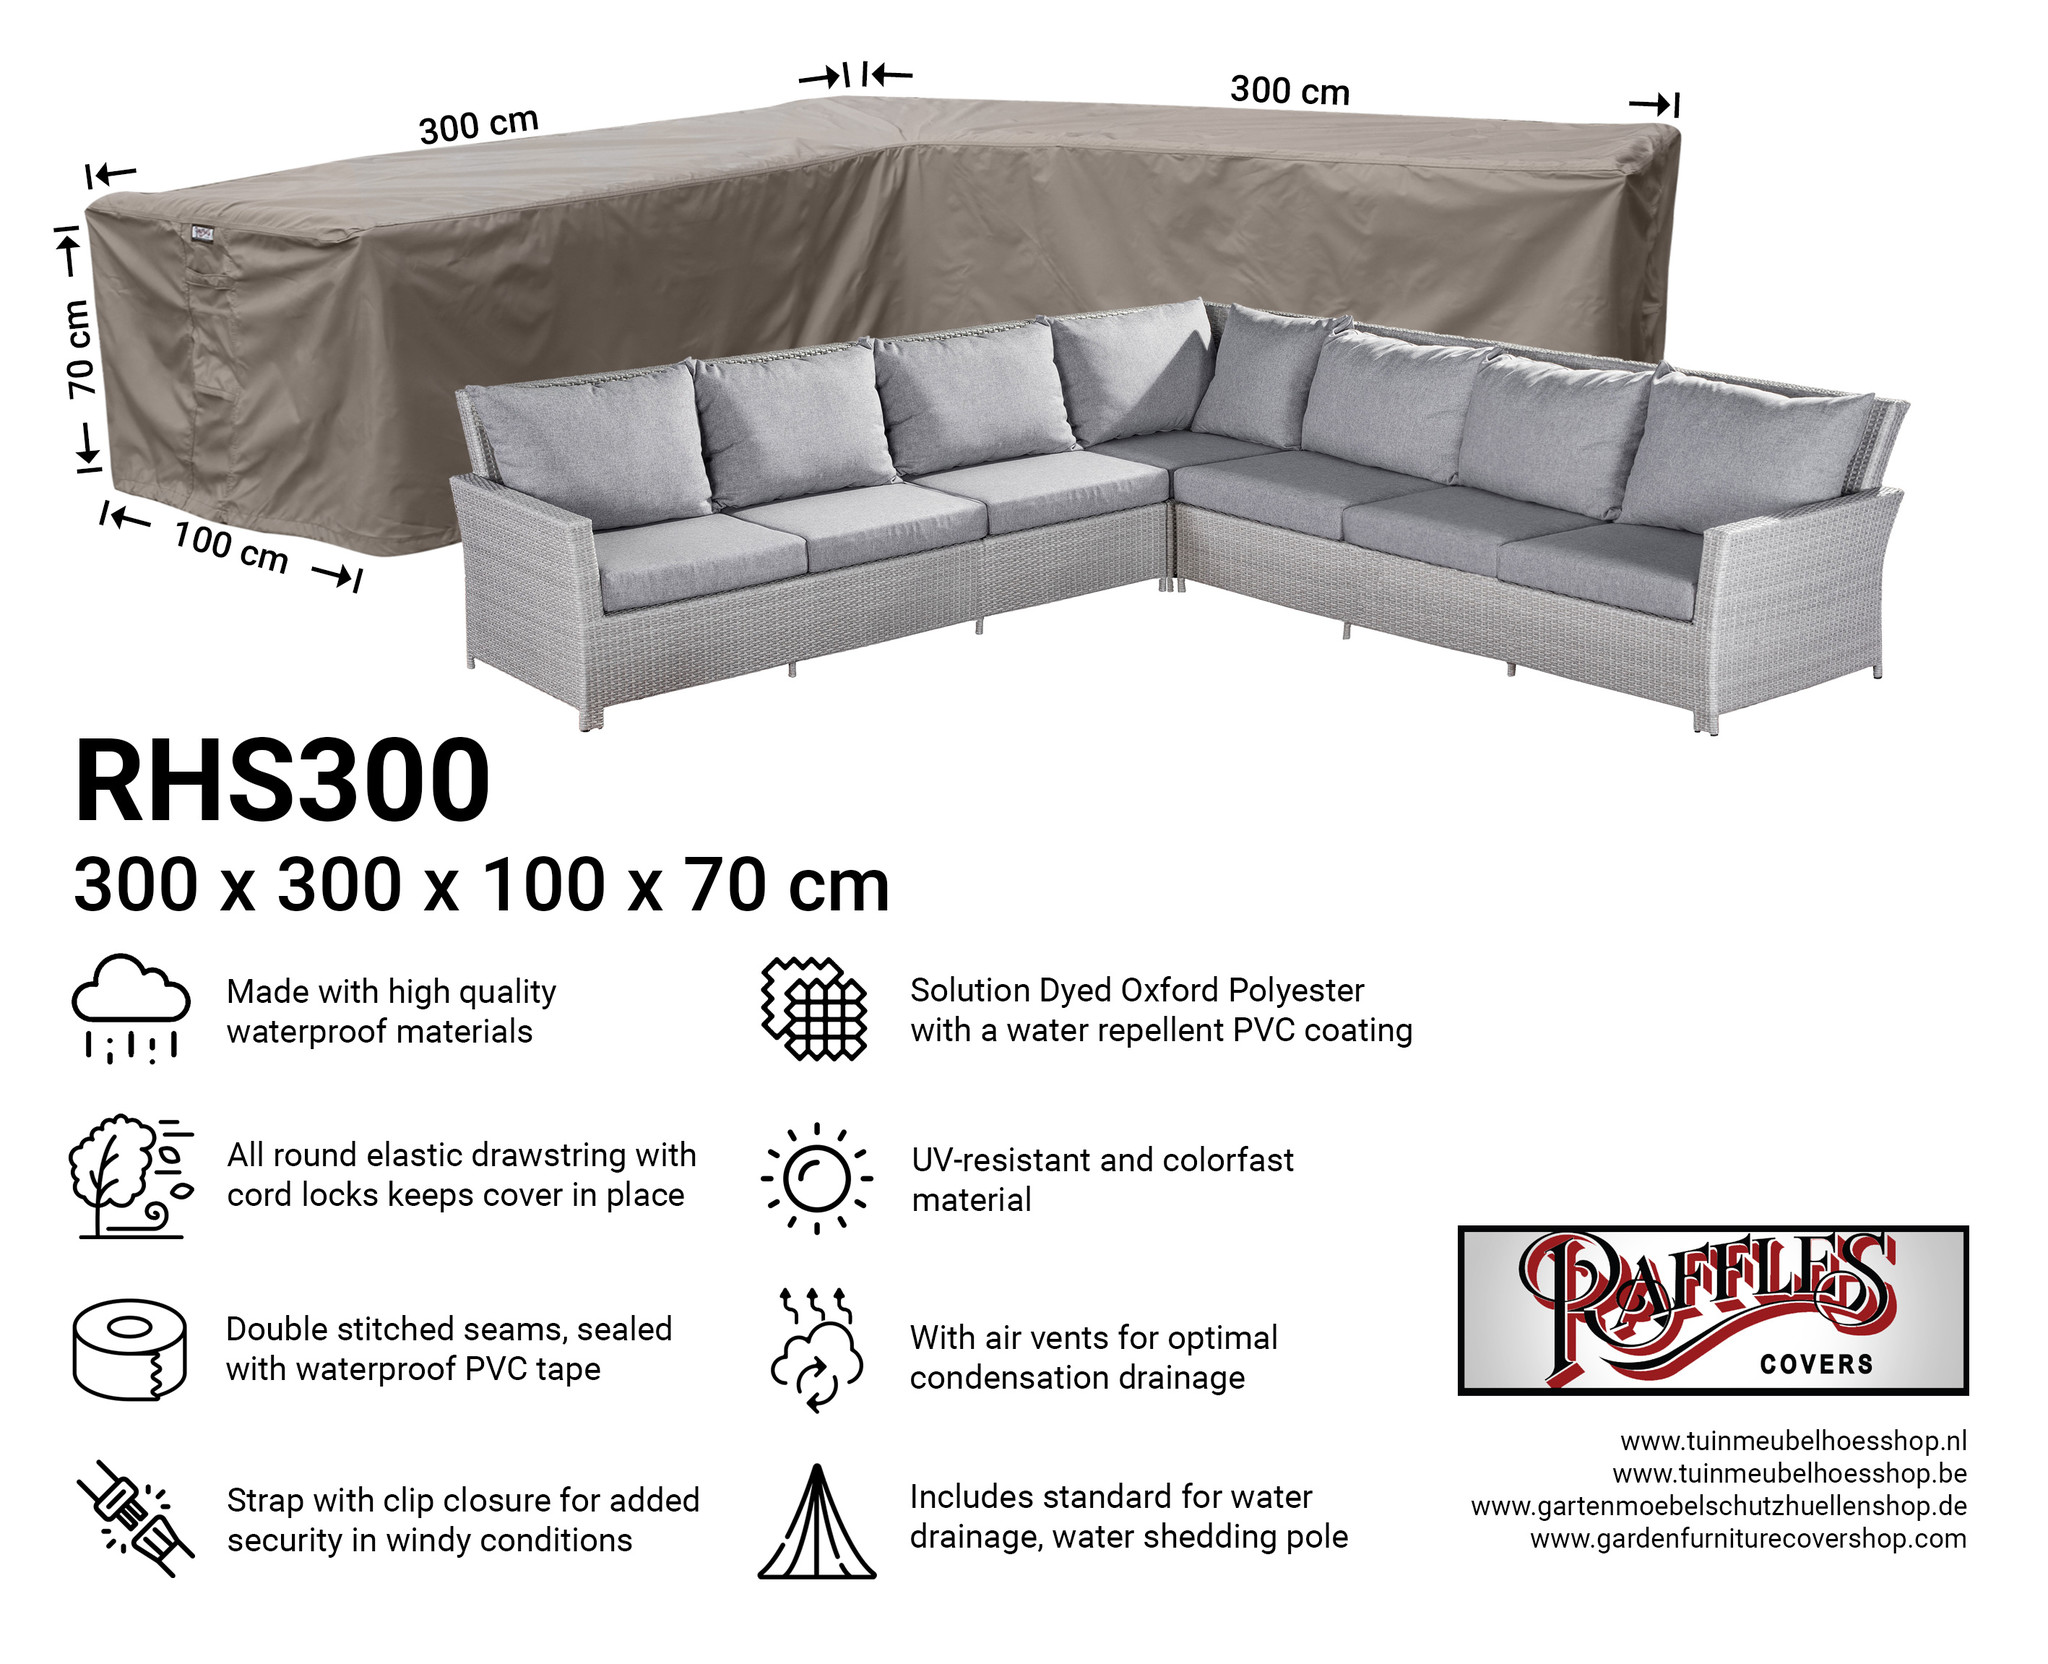 Outdoor corner sofa cover 300 x 300 cm